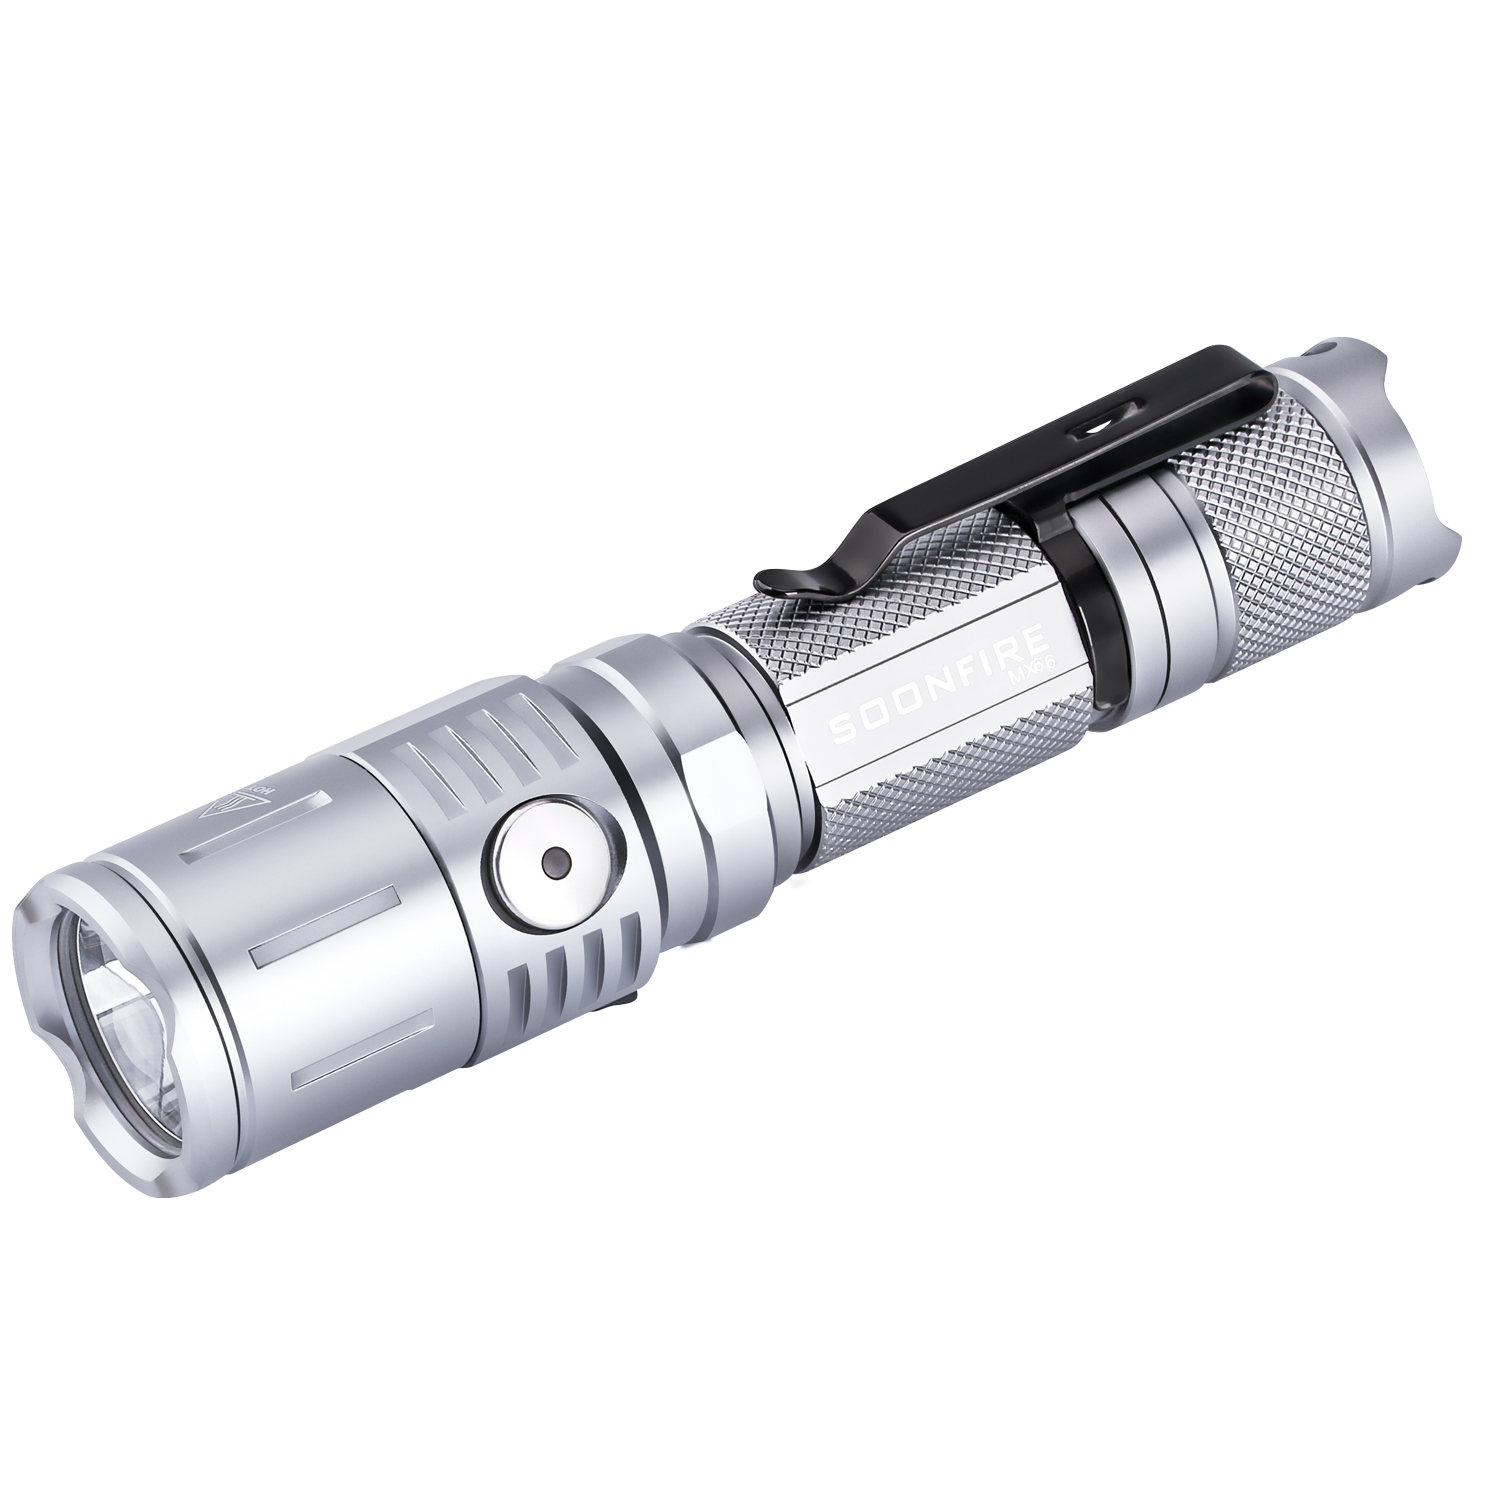 Soonfire MX Series Cree LED Tactical Flashlight(Grey)